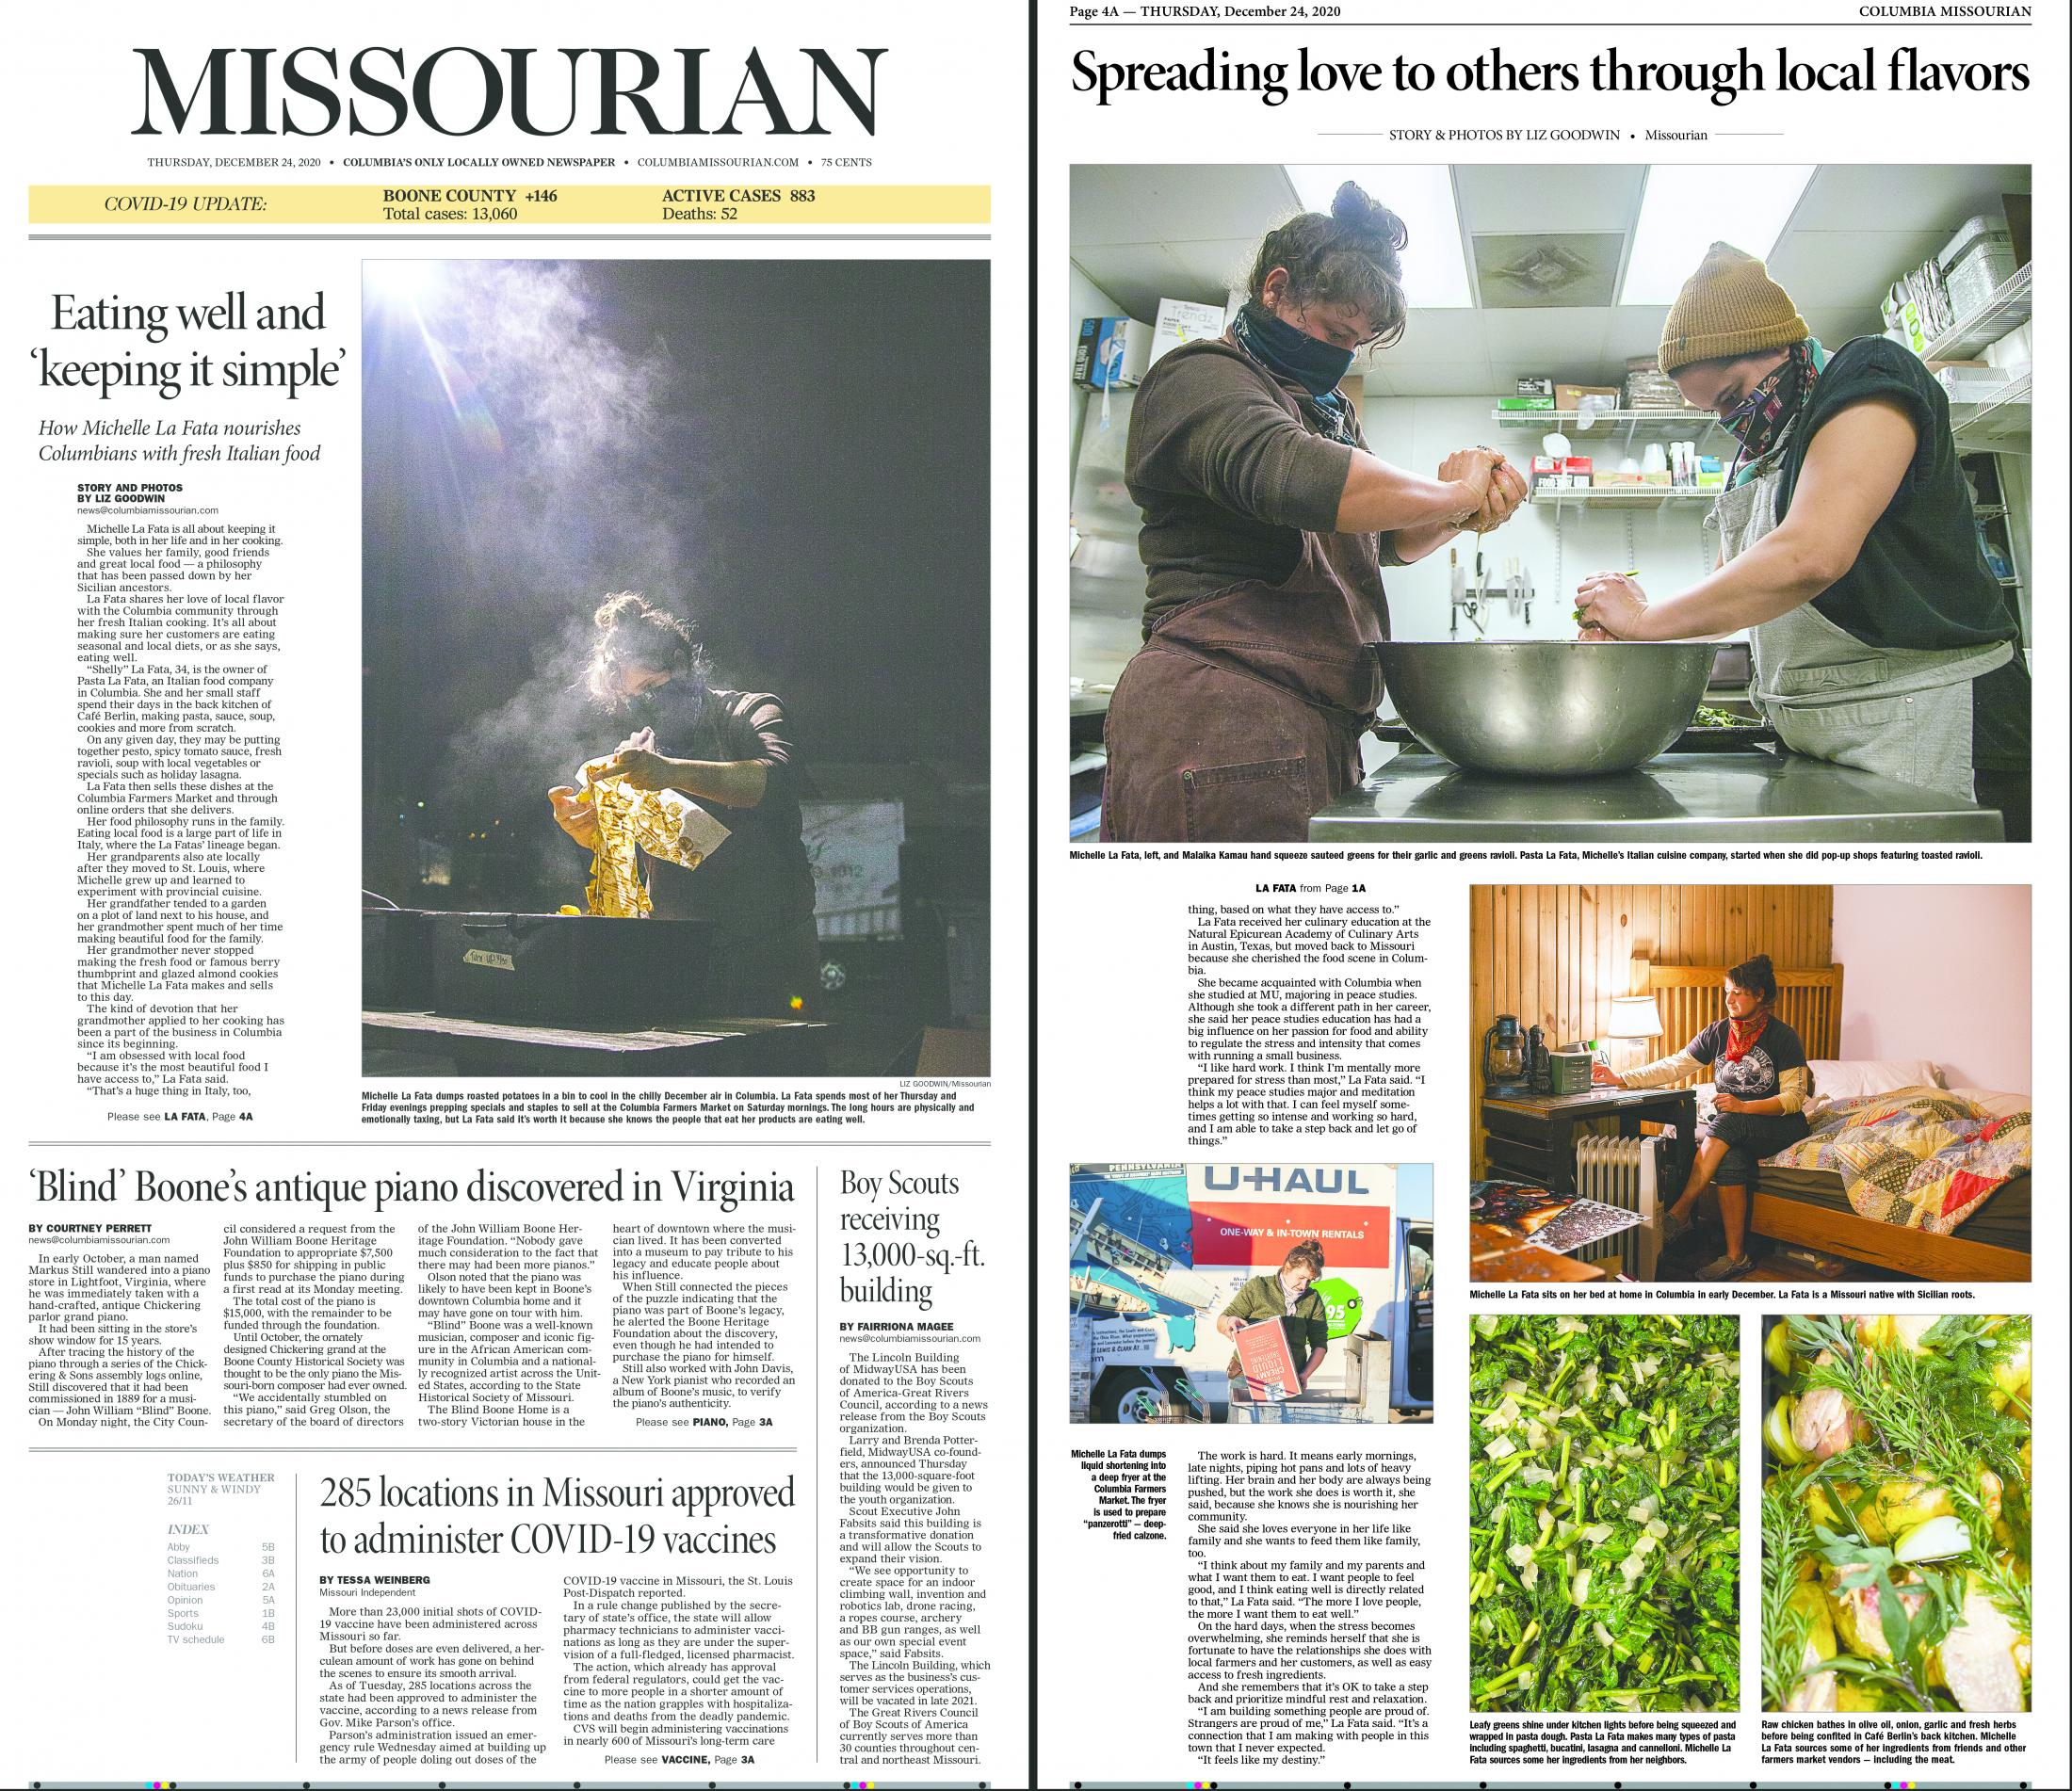 I worked with photographer Liz Goodwin to edit her photo story on local cook Michelle La Fata. After editing her story, I designed the digital product for the Columbia Missourian  website. I also sat down with designer Jacob Moscovitch to design the print edition featuring Goodwin's story. This is the print product with the digital product located here .